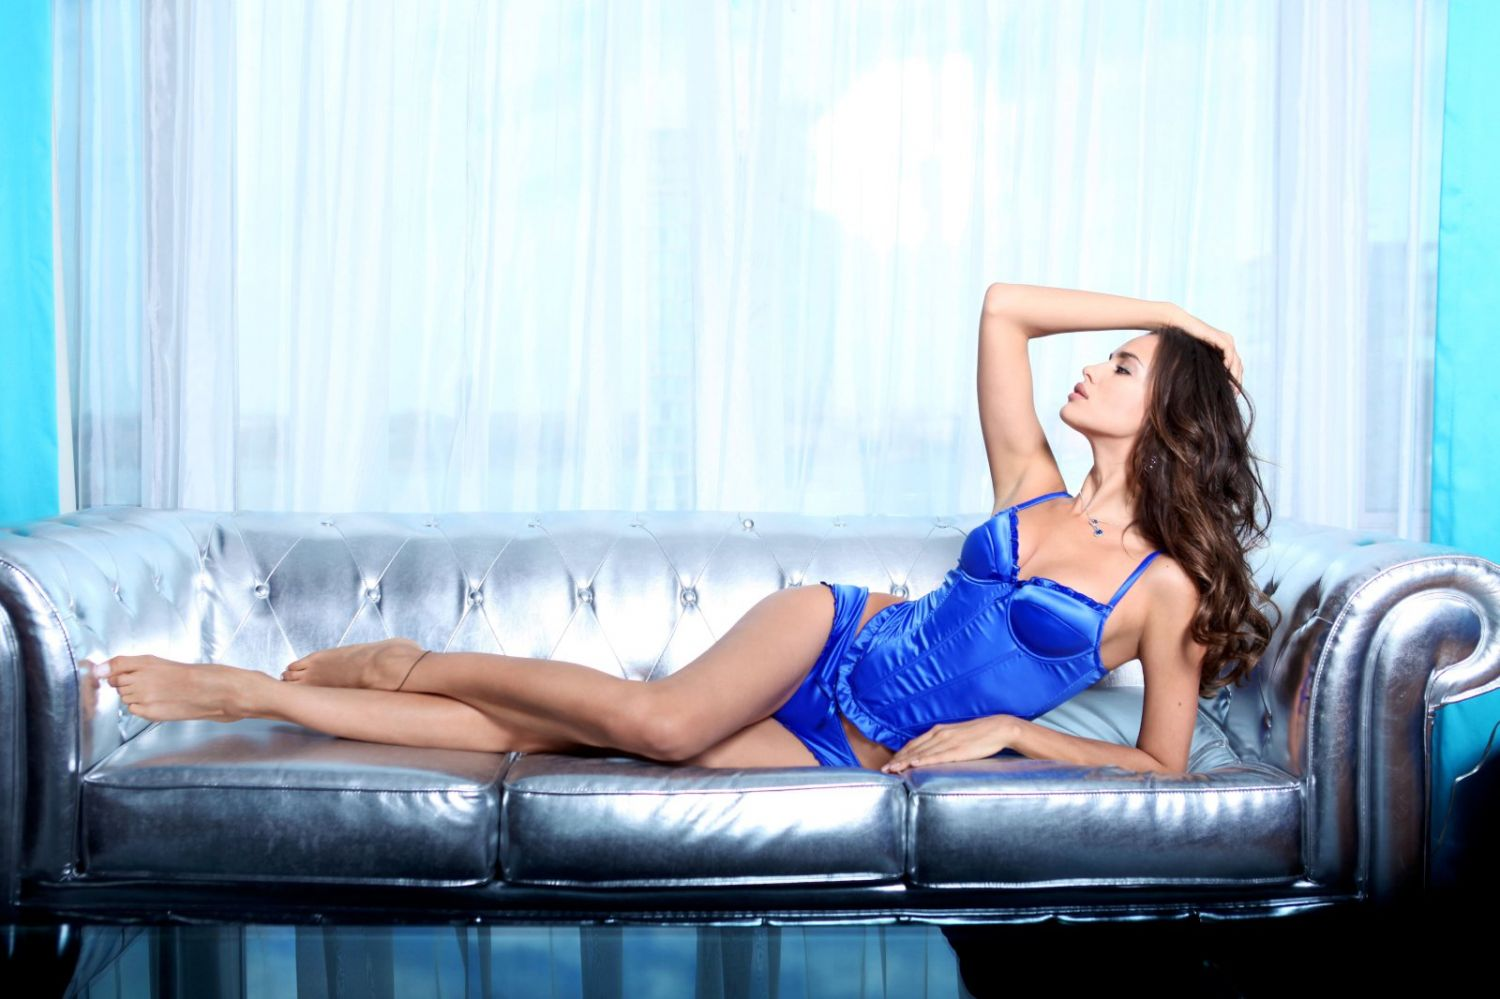 Irina Shayk goes seductive for new lingerie photoshoot